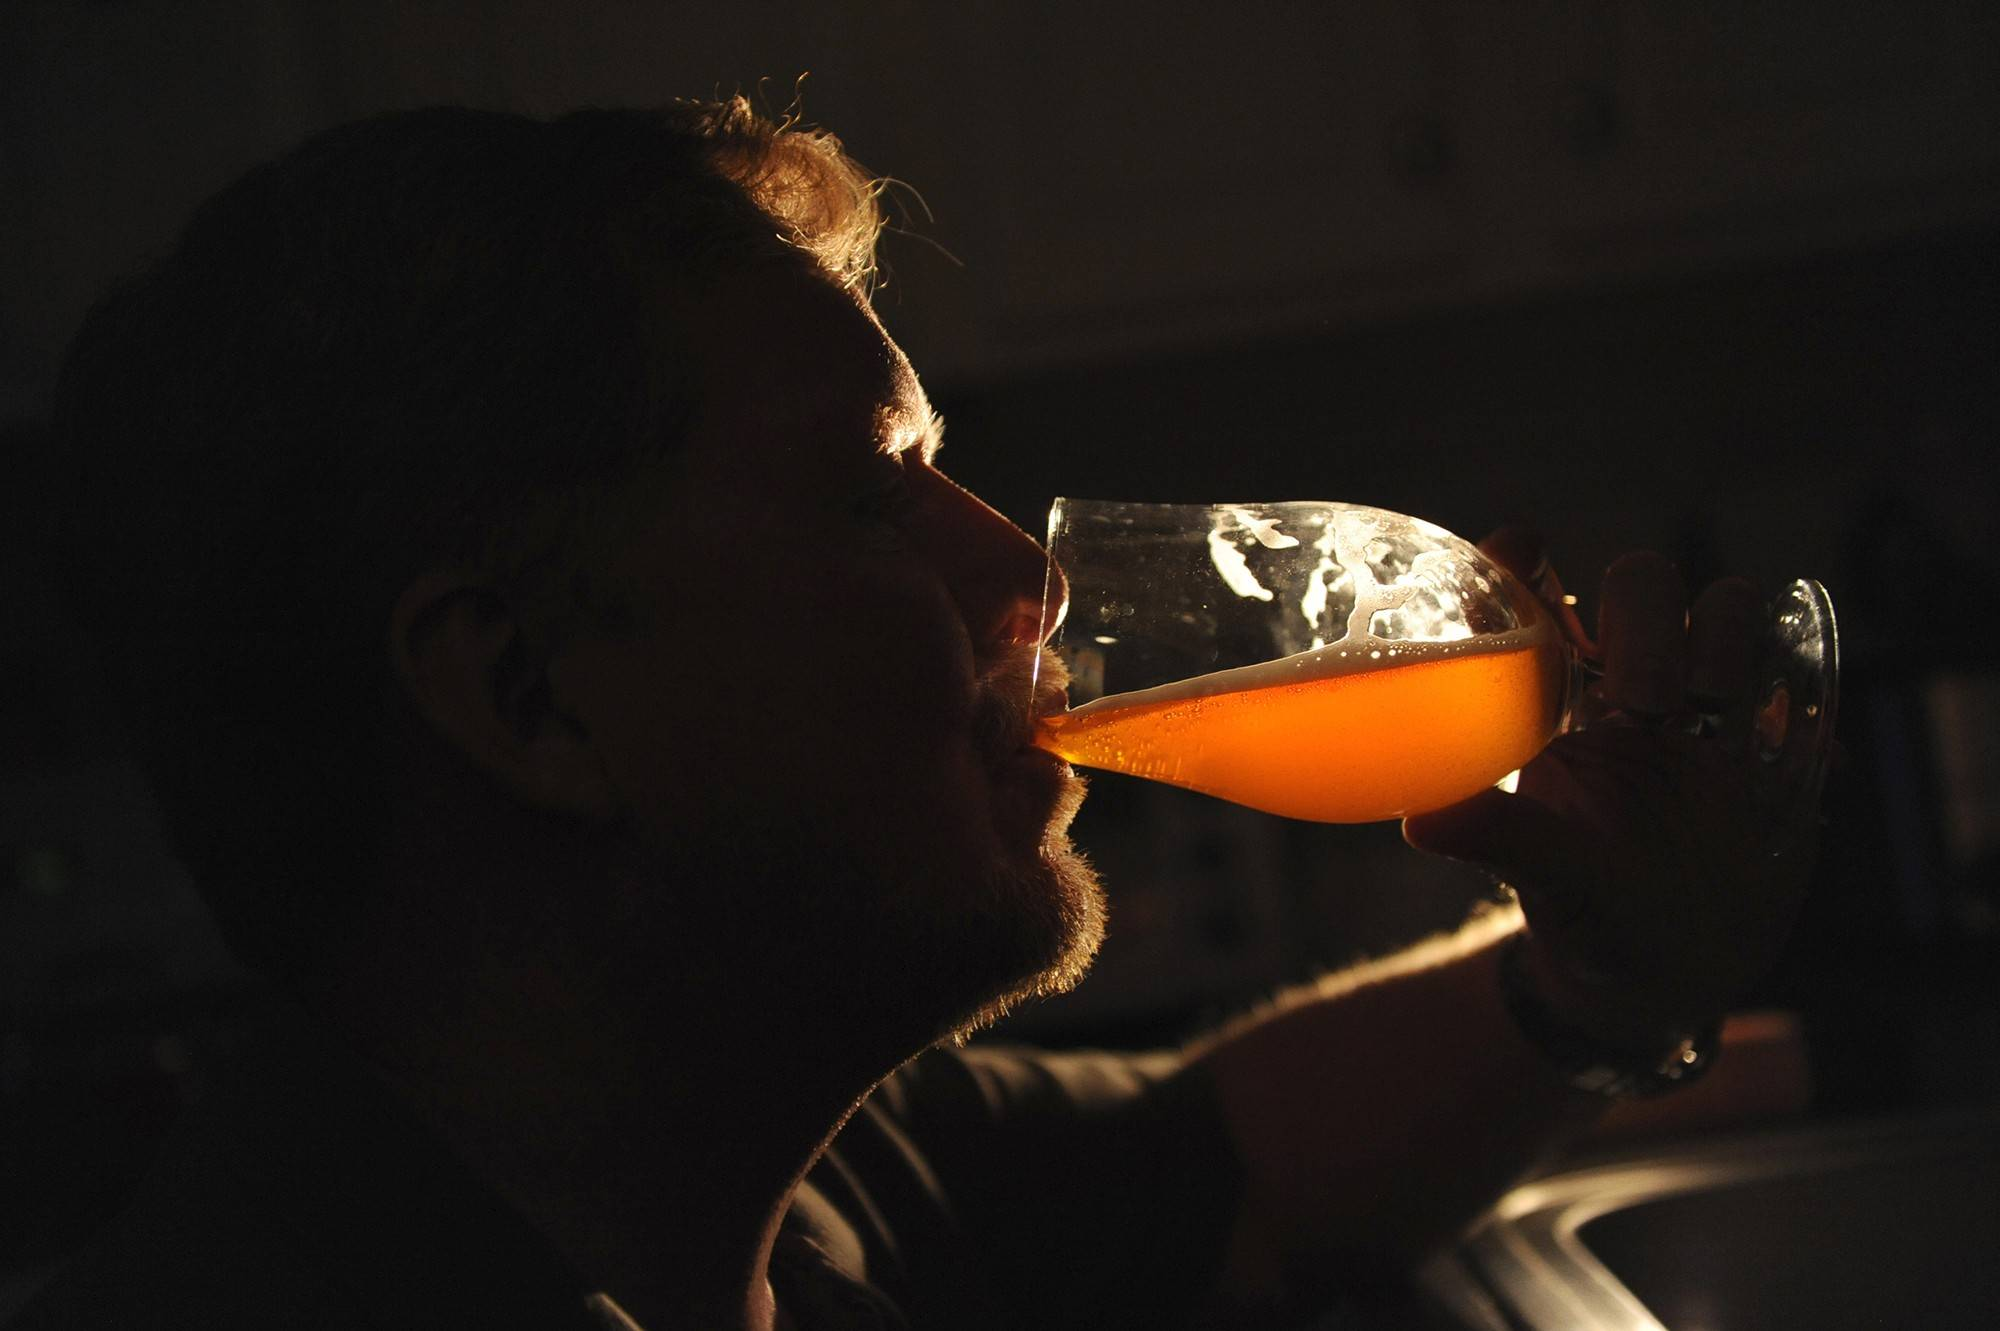 Gene Bonventre became interested in beer while stationed in England with the Air Force; he joined RateBeer in November 2008 after he retired and soon will rate his 10,000th beer.